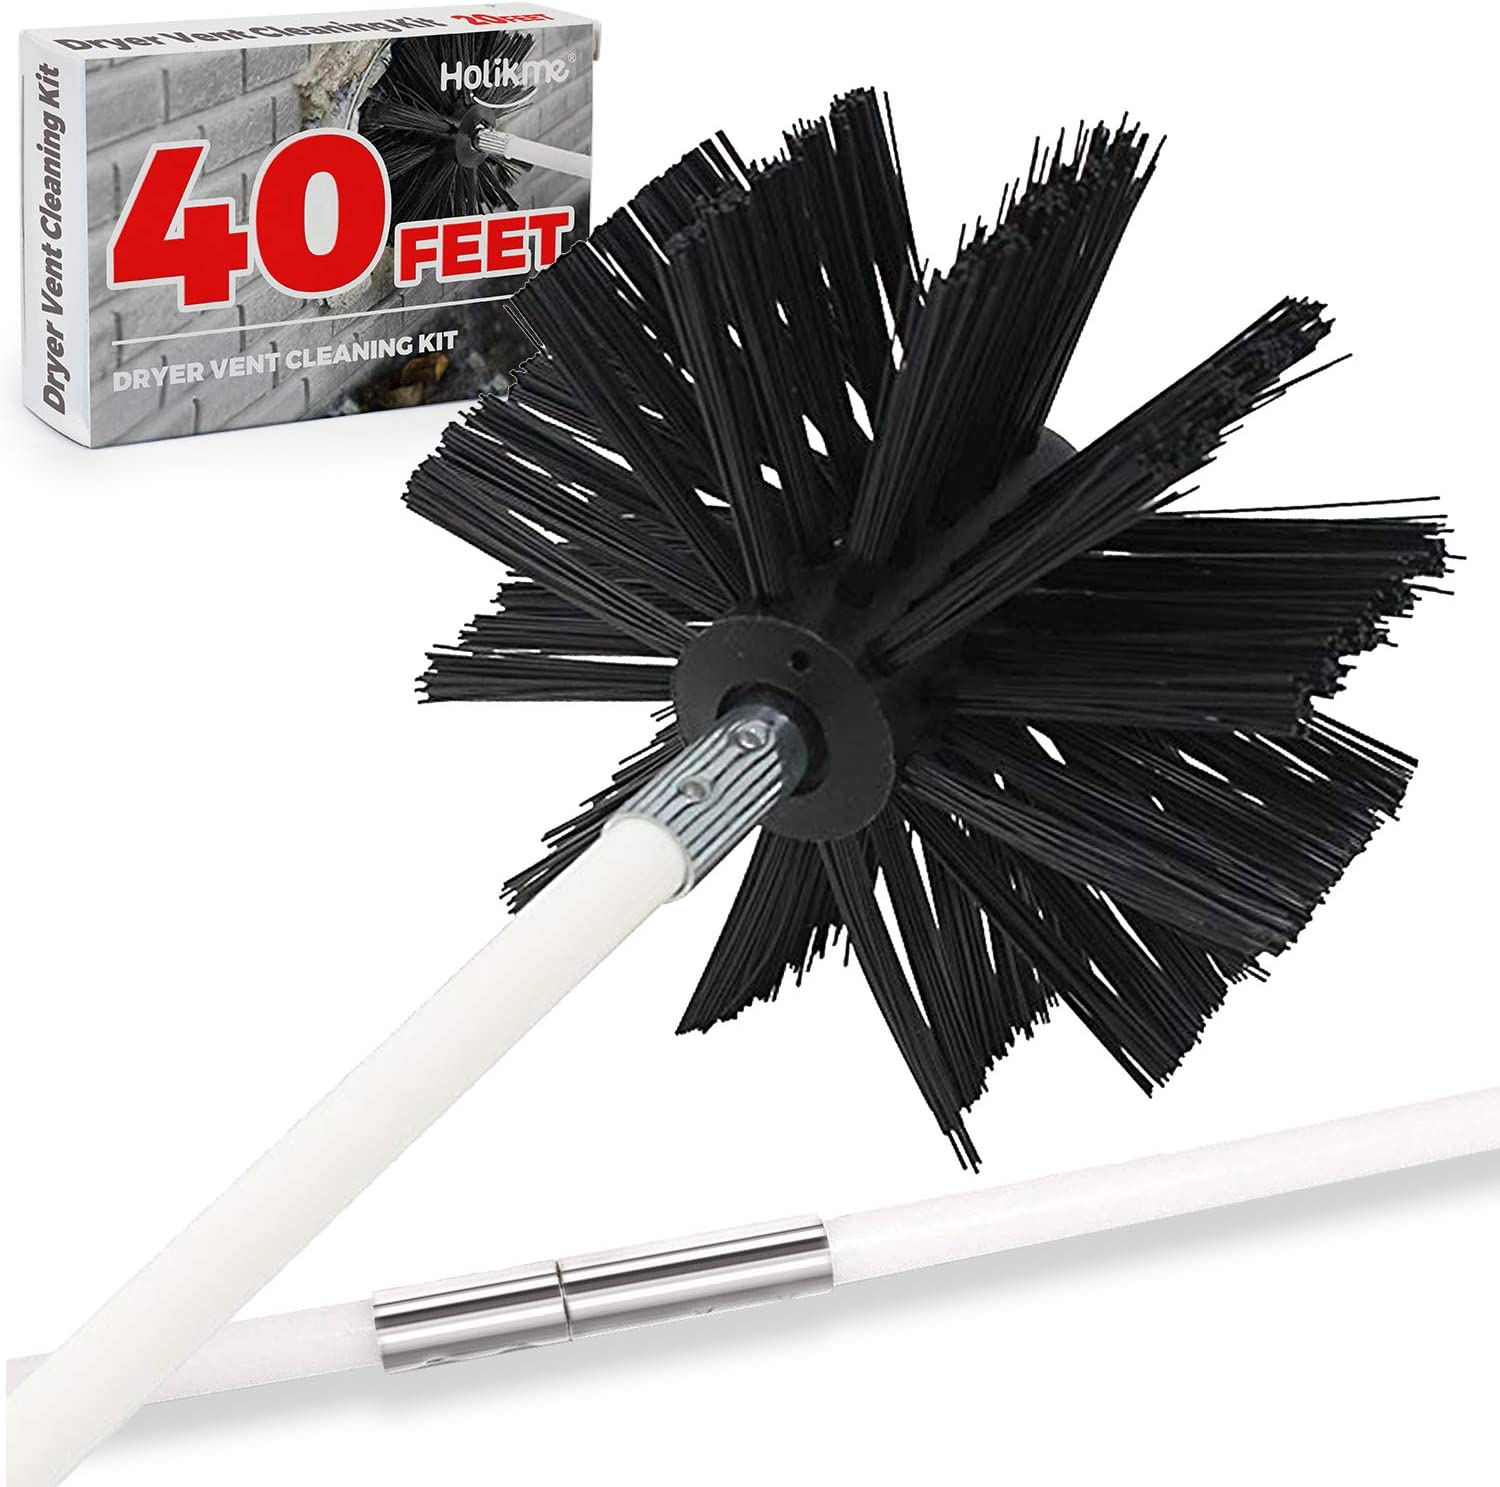 Holikme 40 Feet Dryer Vent Cleaning Brush, Lint Remover, Extends Up to 40 Feet, Synthetic Brush Head, Use with or Without a Power Drill